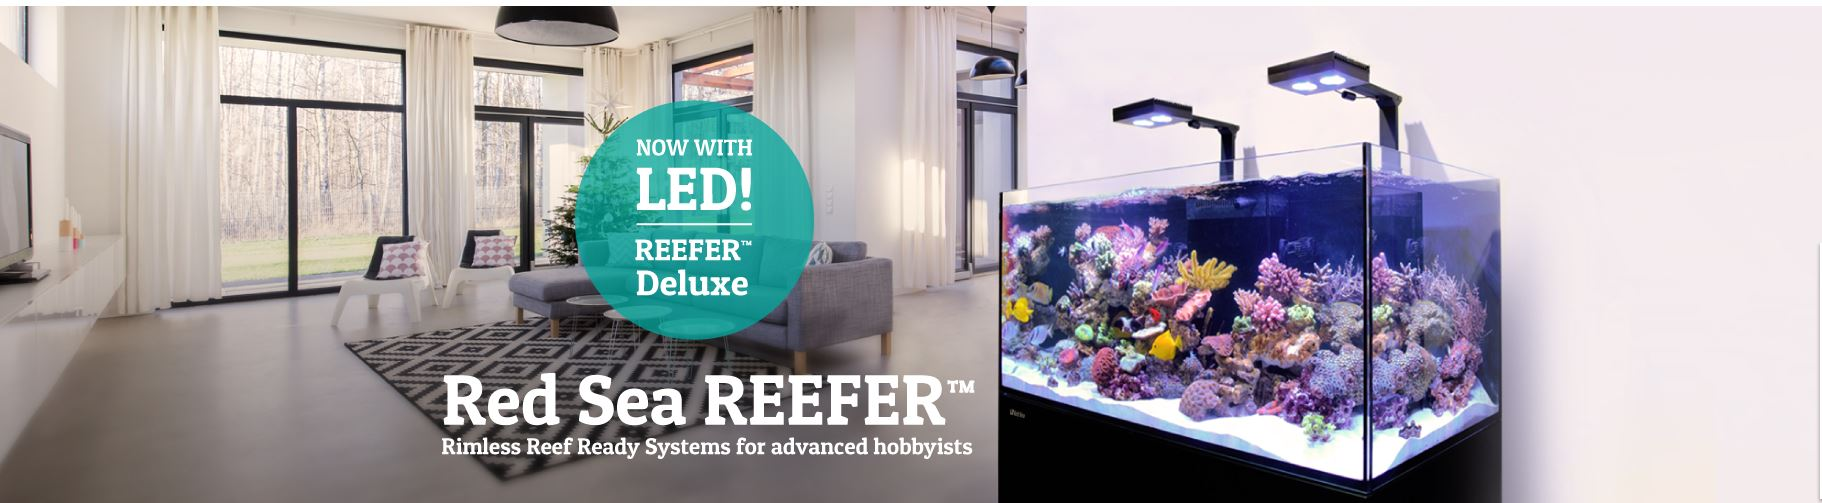 red sea reefer canada